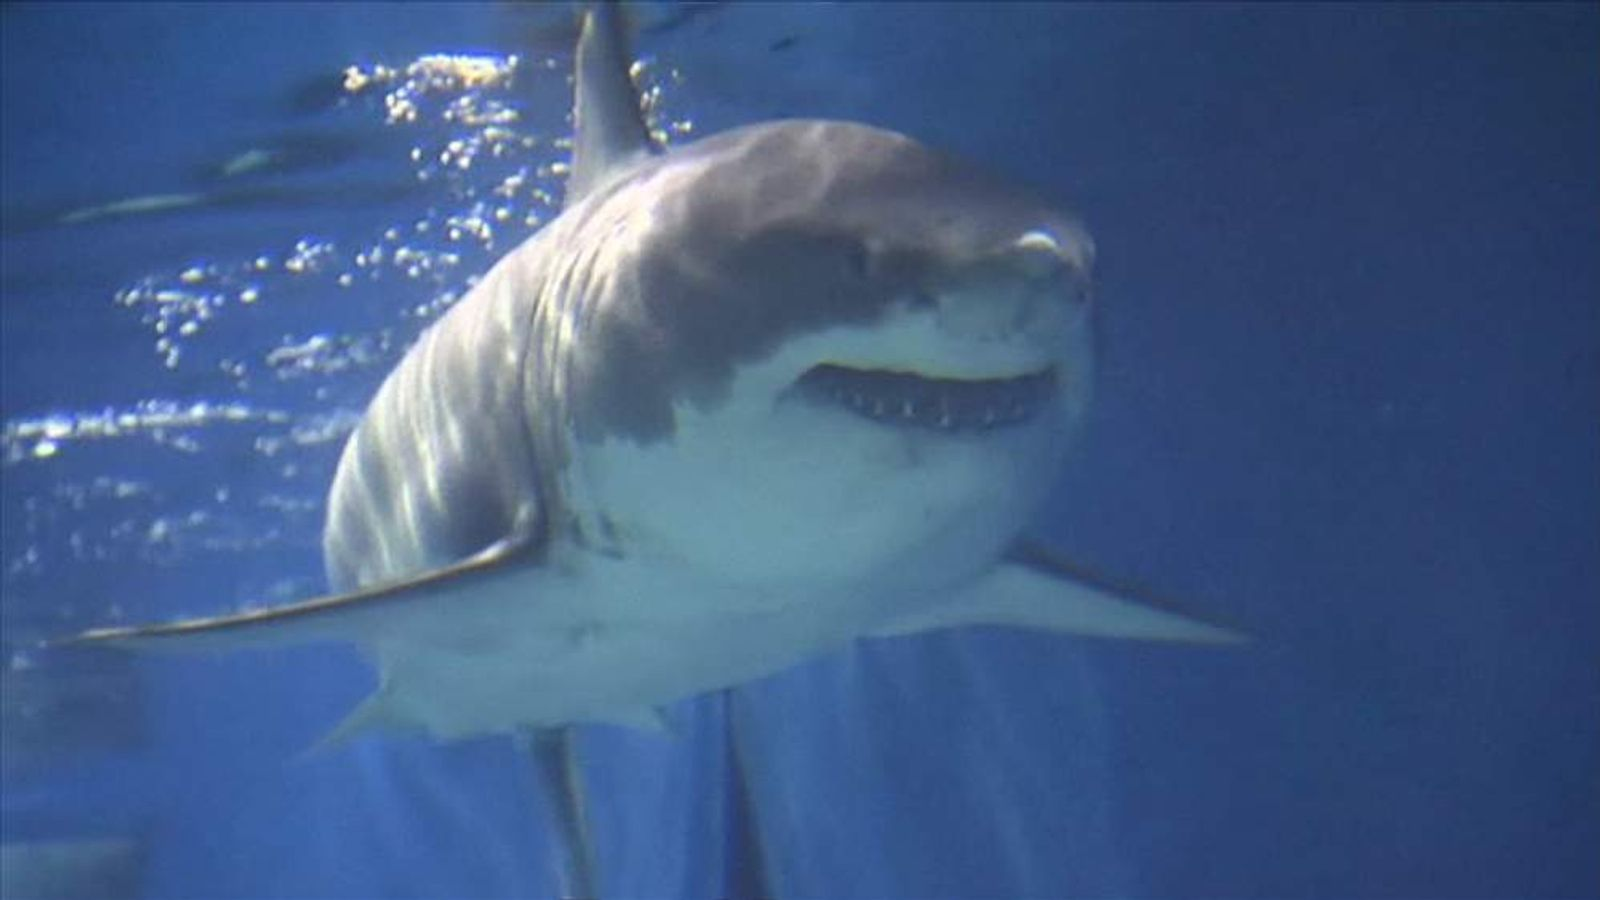 Shark dies in Japan aquarium